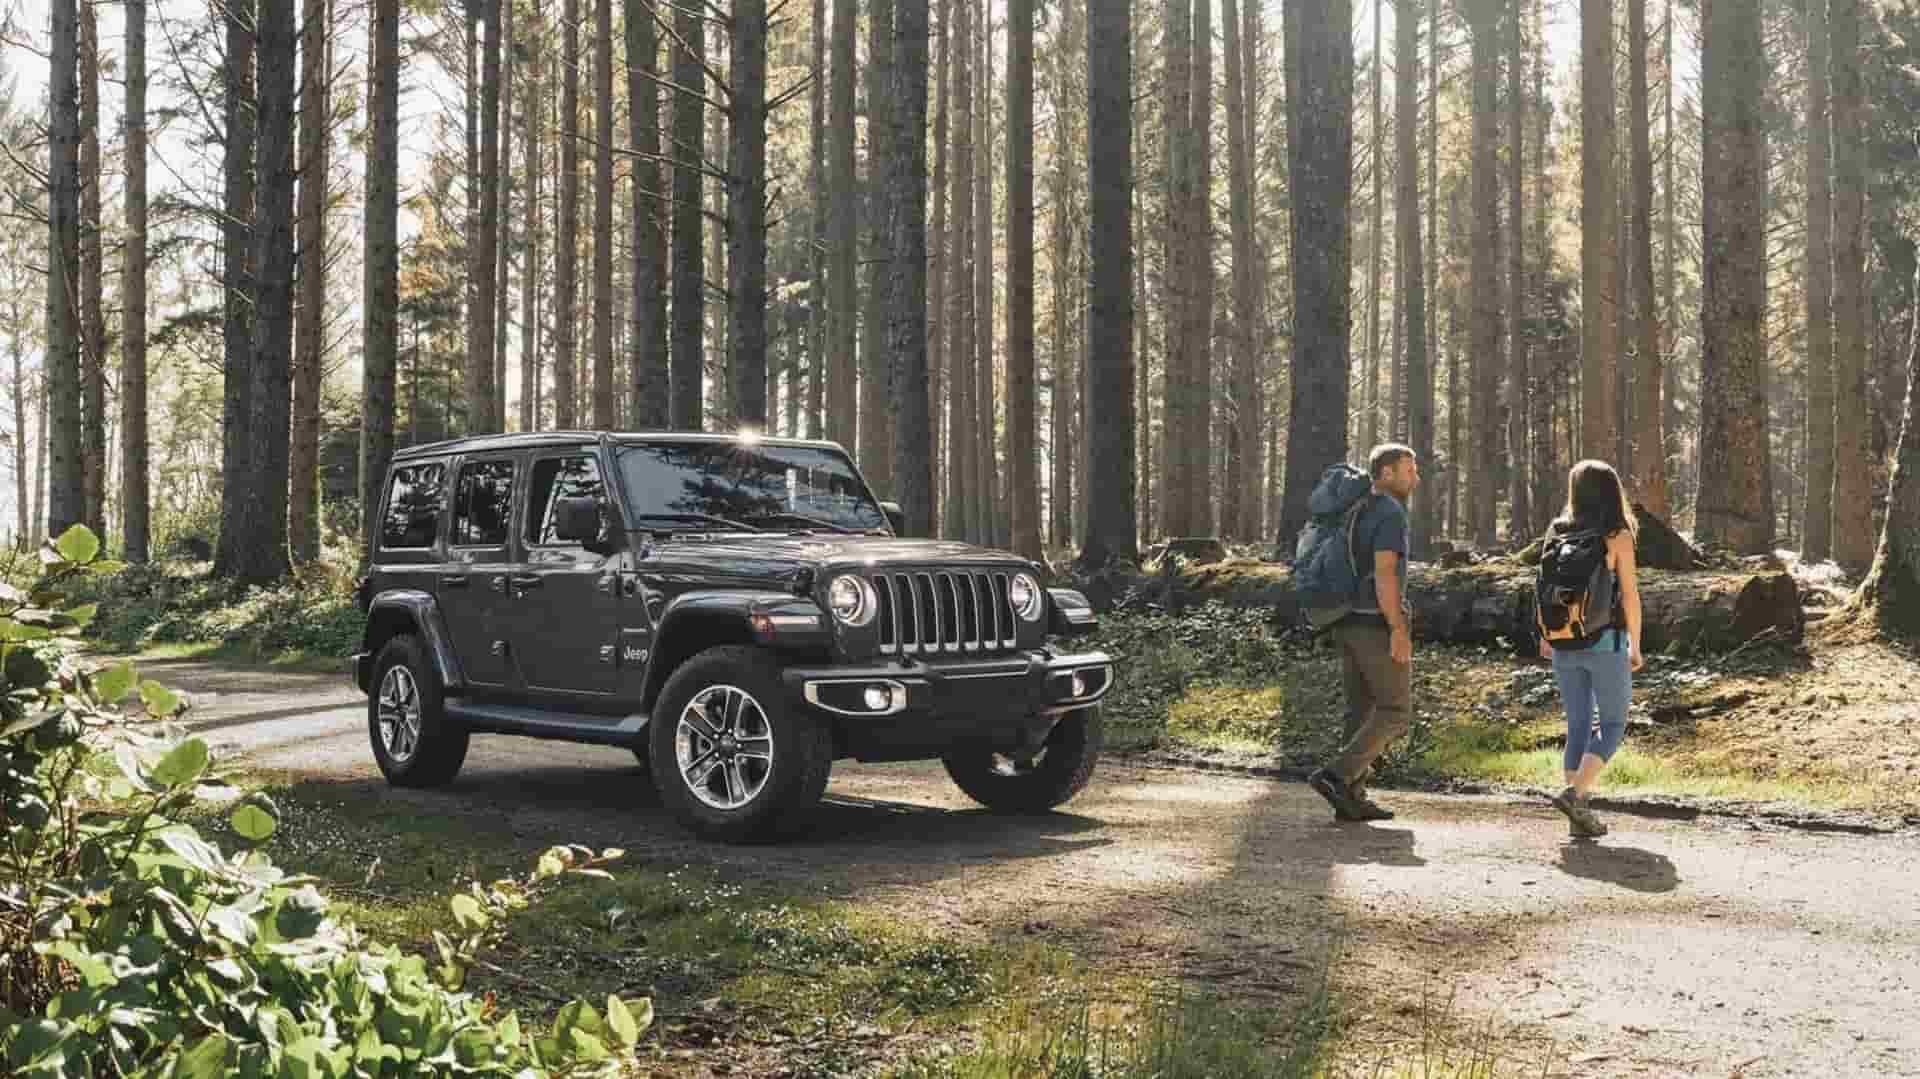 Lease a 2019 Jeep Renegade near Longmont CO